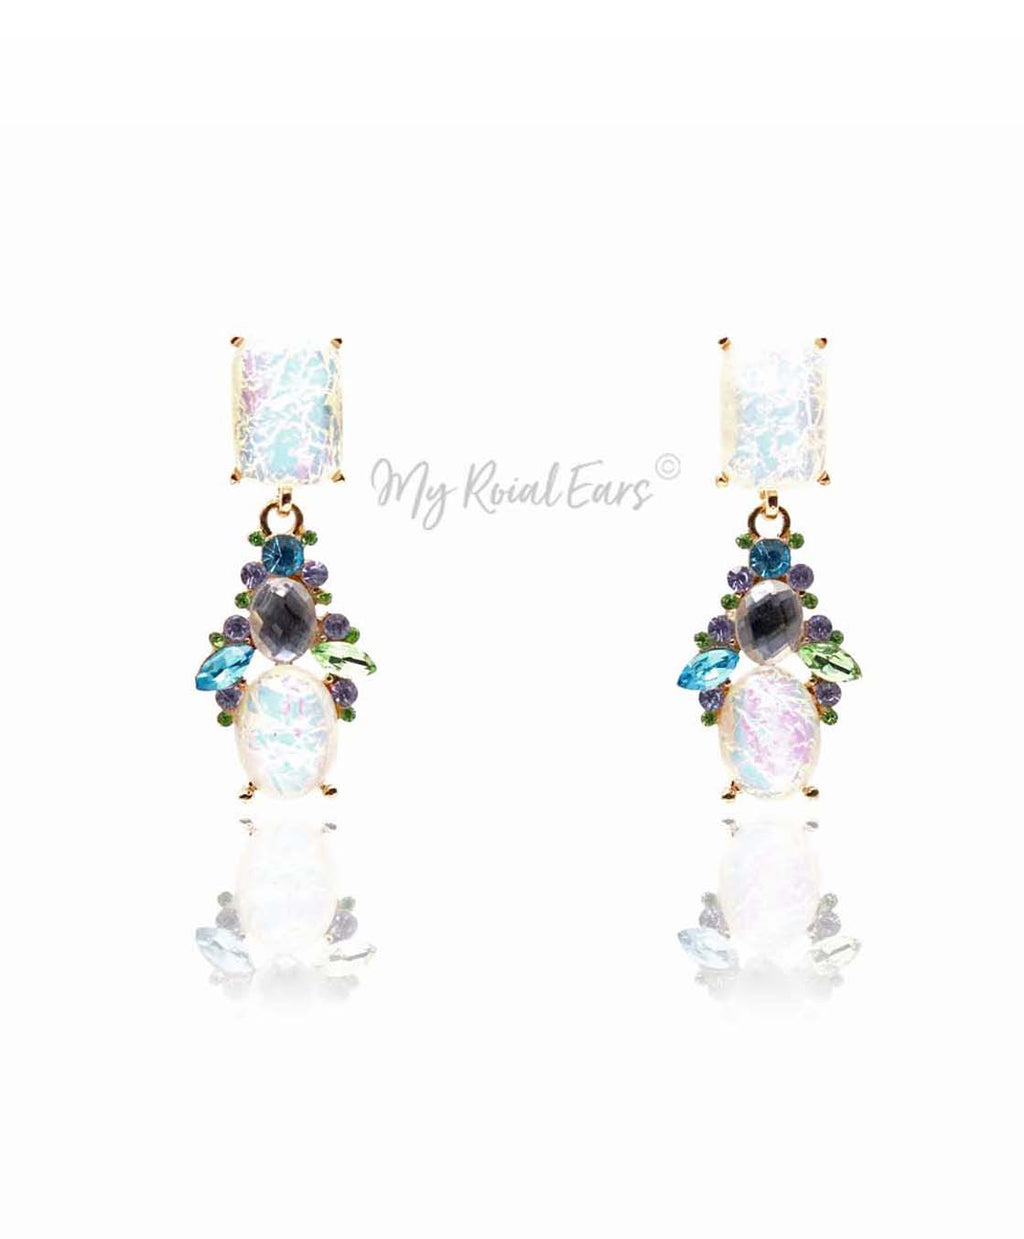 Q WANDA-imperial multi colored crystal pebble bridal earrings - My Roial Ears LTD